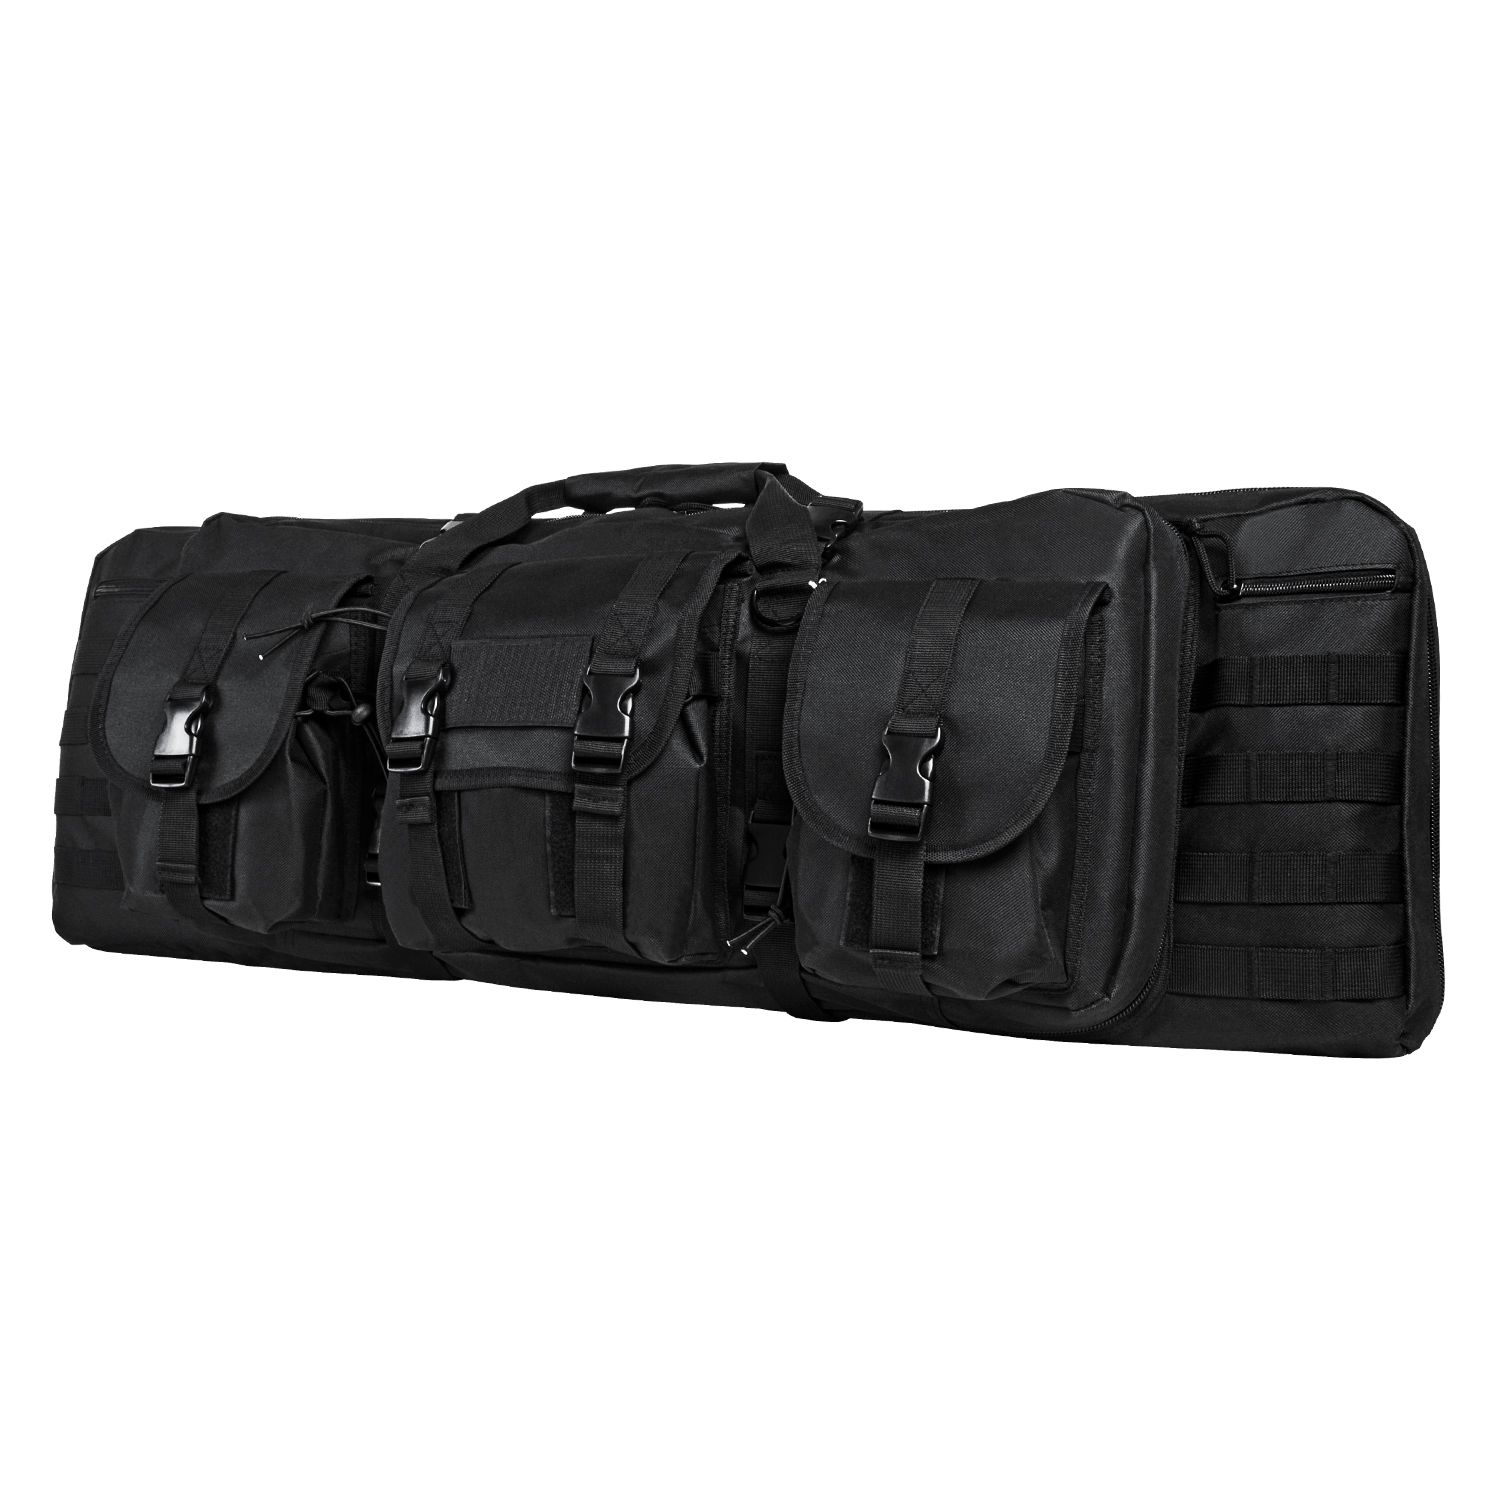 Vism Deluxe Double Rifle Case 46 inL X 13 inH-Black